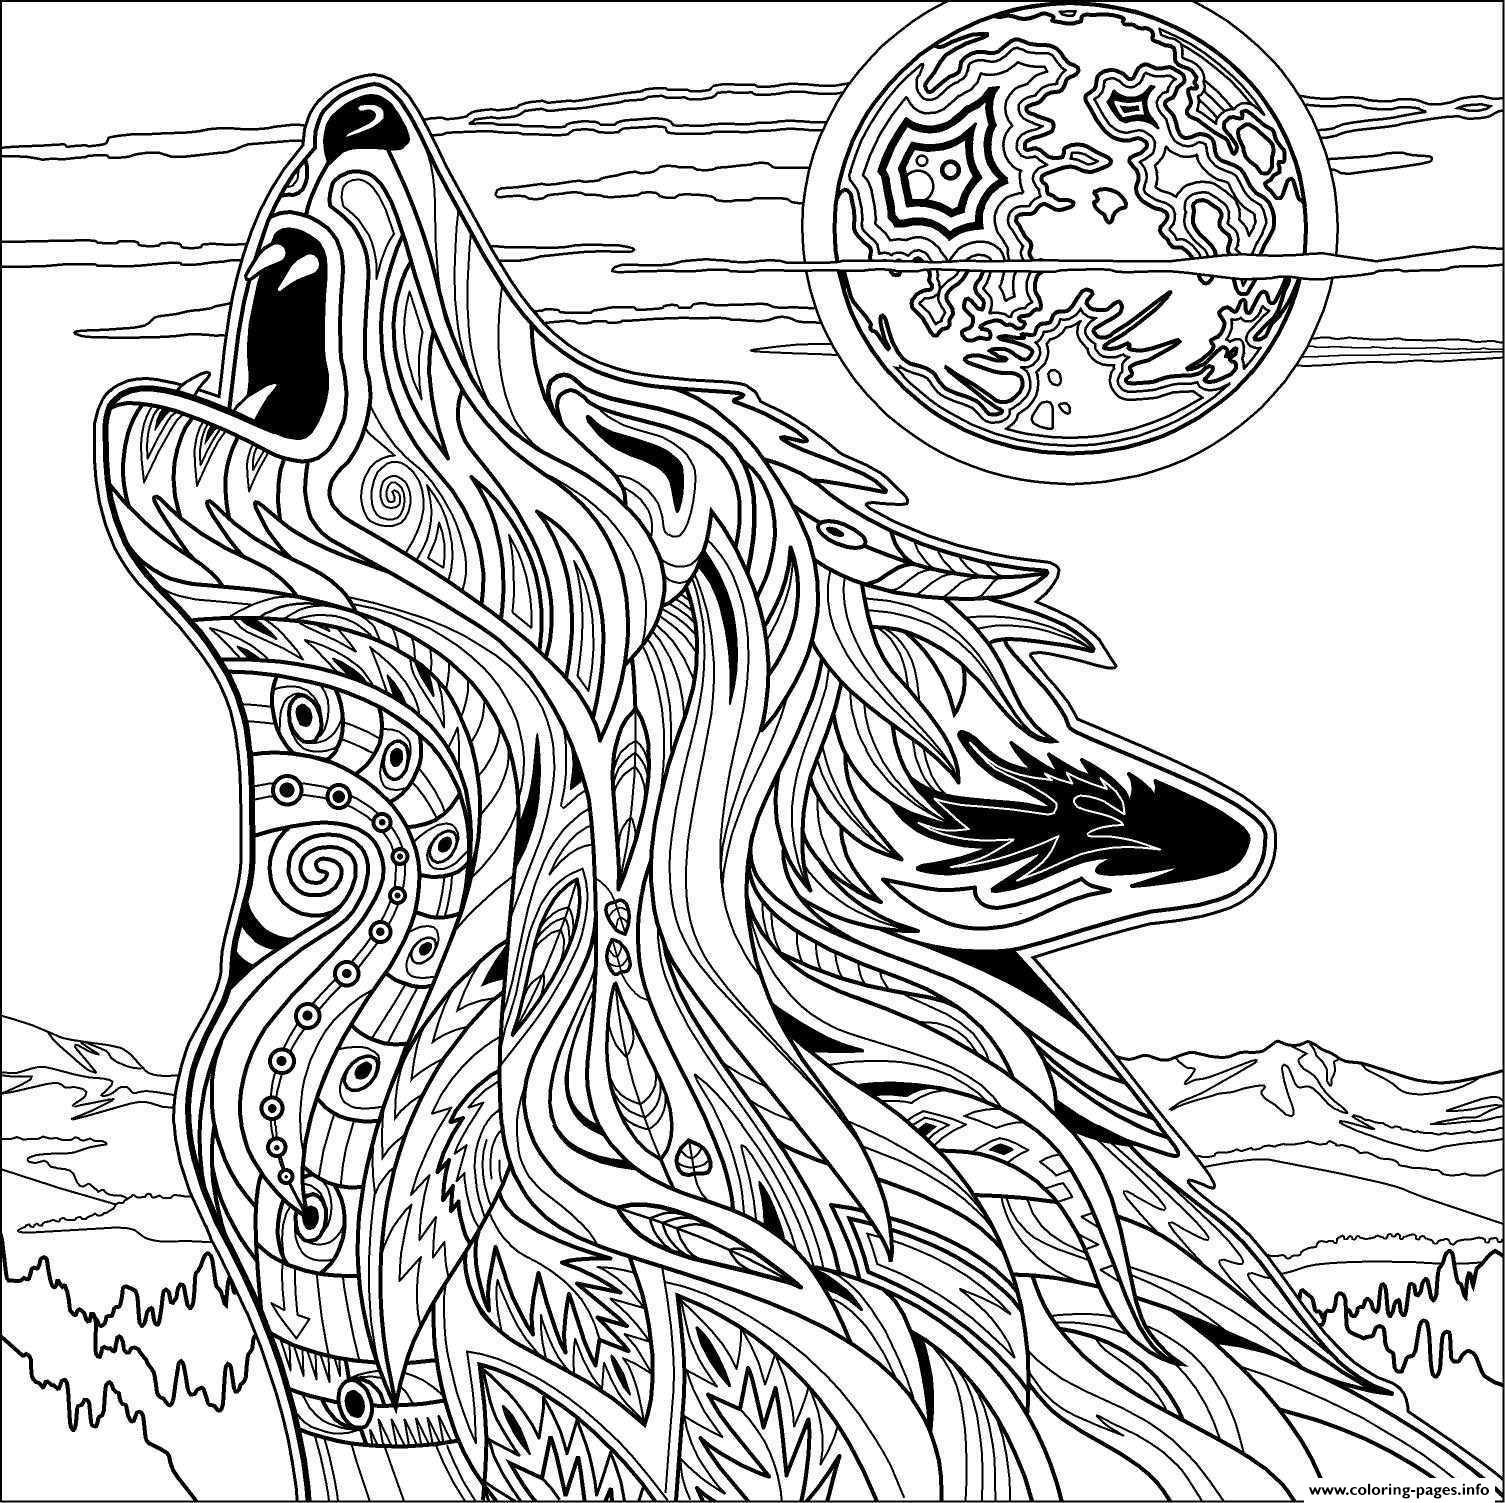 Mandala Wolf Coloring Pages Free Coloring Library Gallery Of Wolf Coloring Pages Elegant Free Printable Wolf Coloring Pages for Download